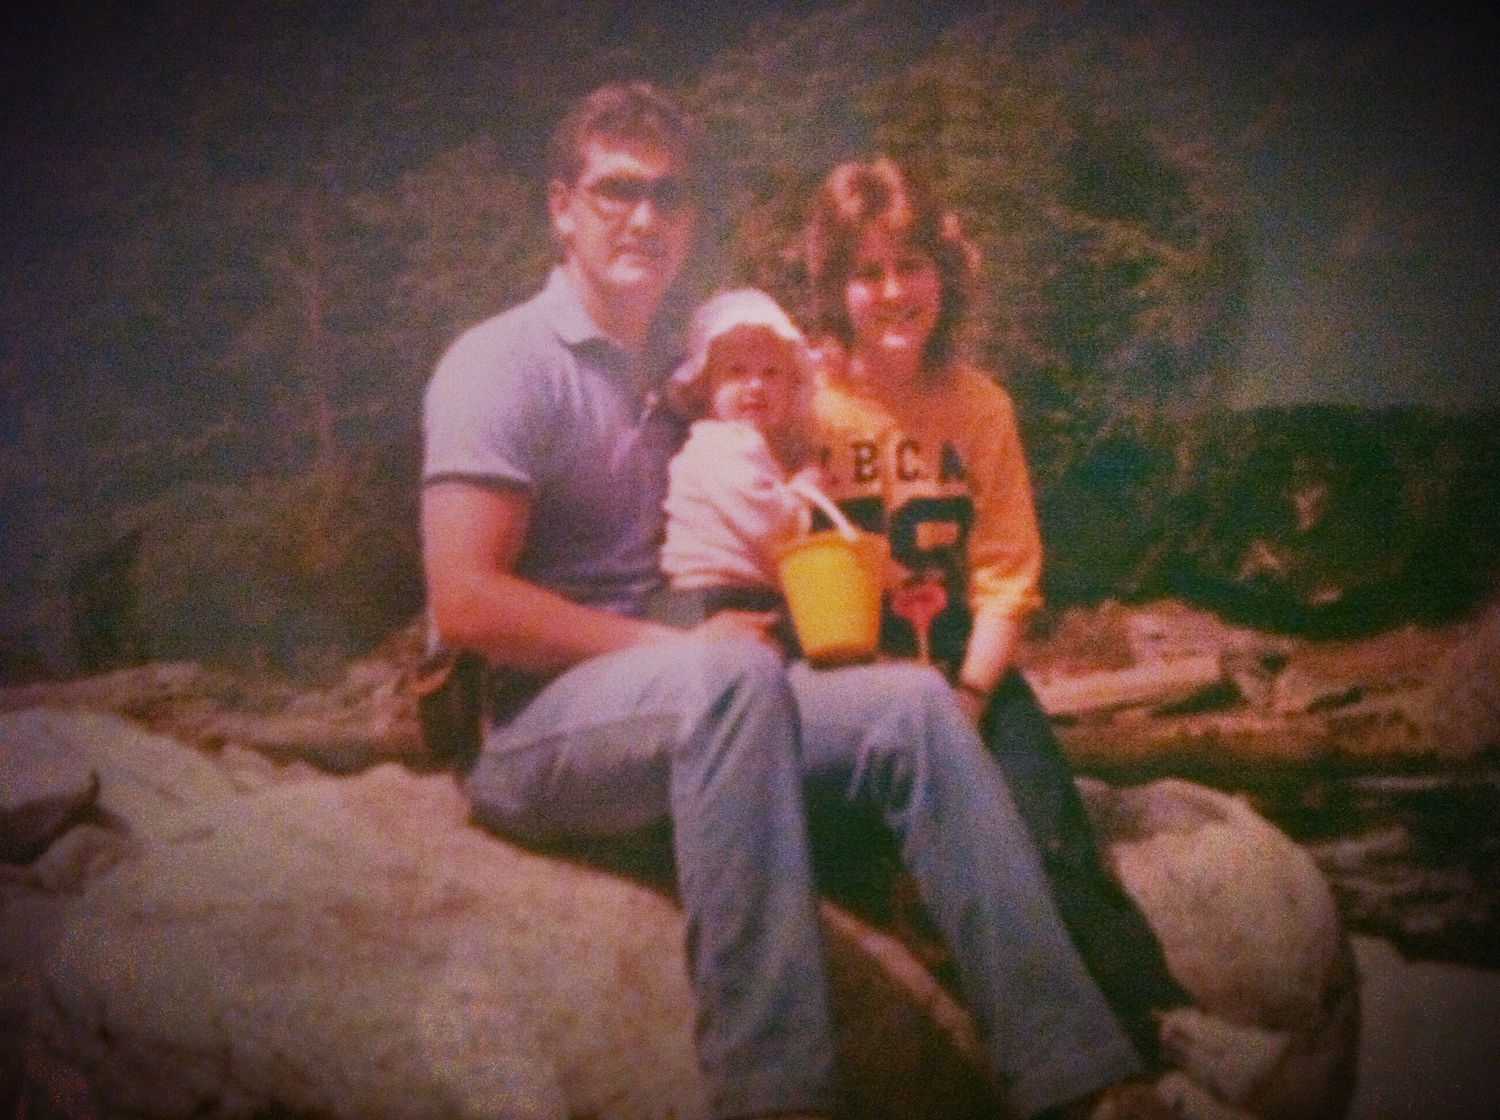 Here i am with my Dad and Mom, Greg and Janet.  I was born on December 16, 1983 in Langhorne, Pennsylvania.